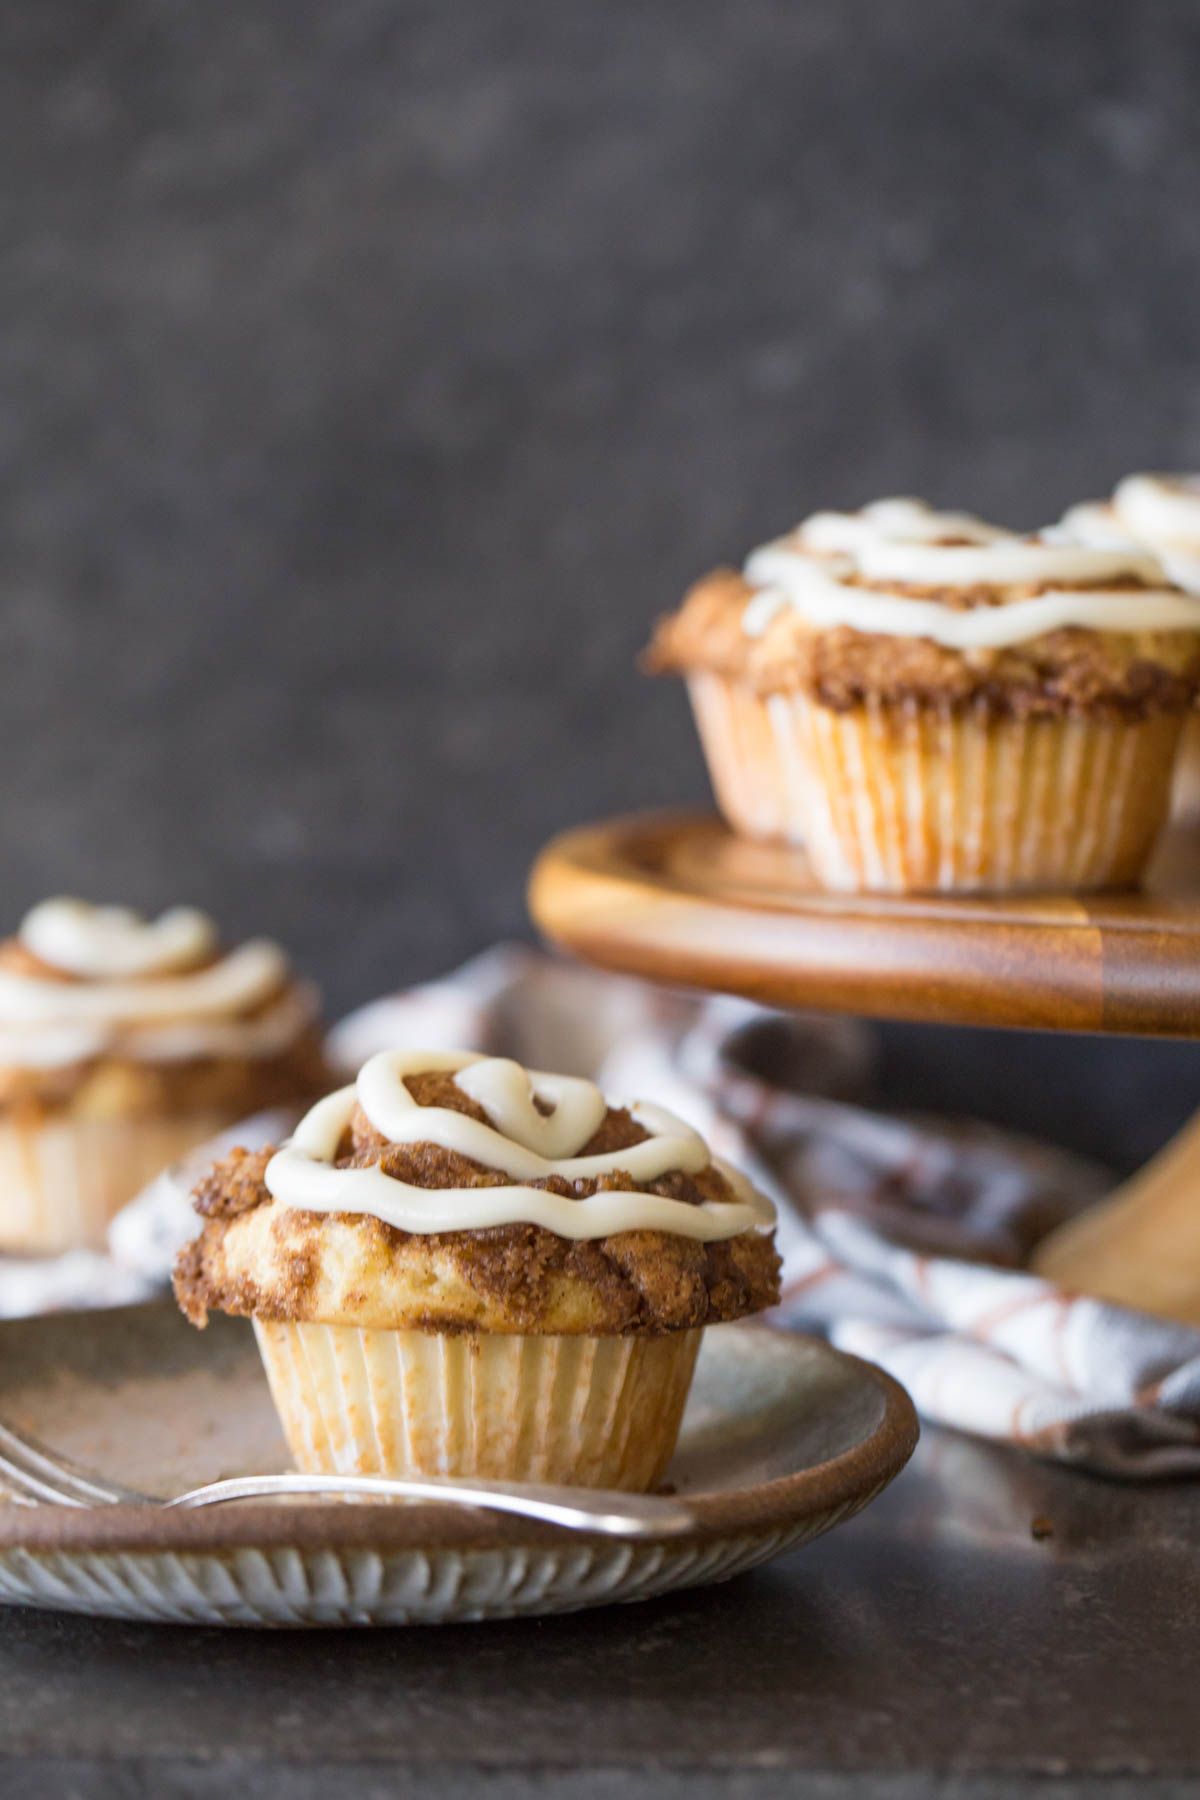 Cinnamon Roll Muffins with a cream cheese icing swirl on a grey plate with a fork.